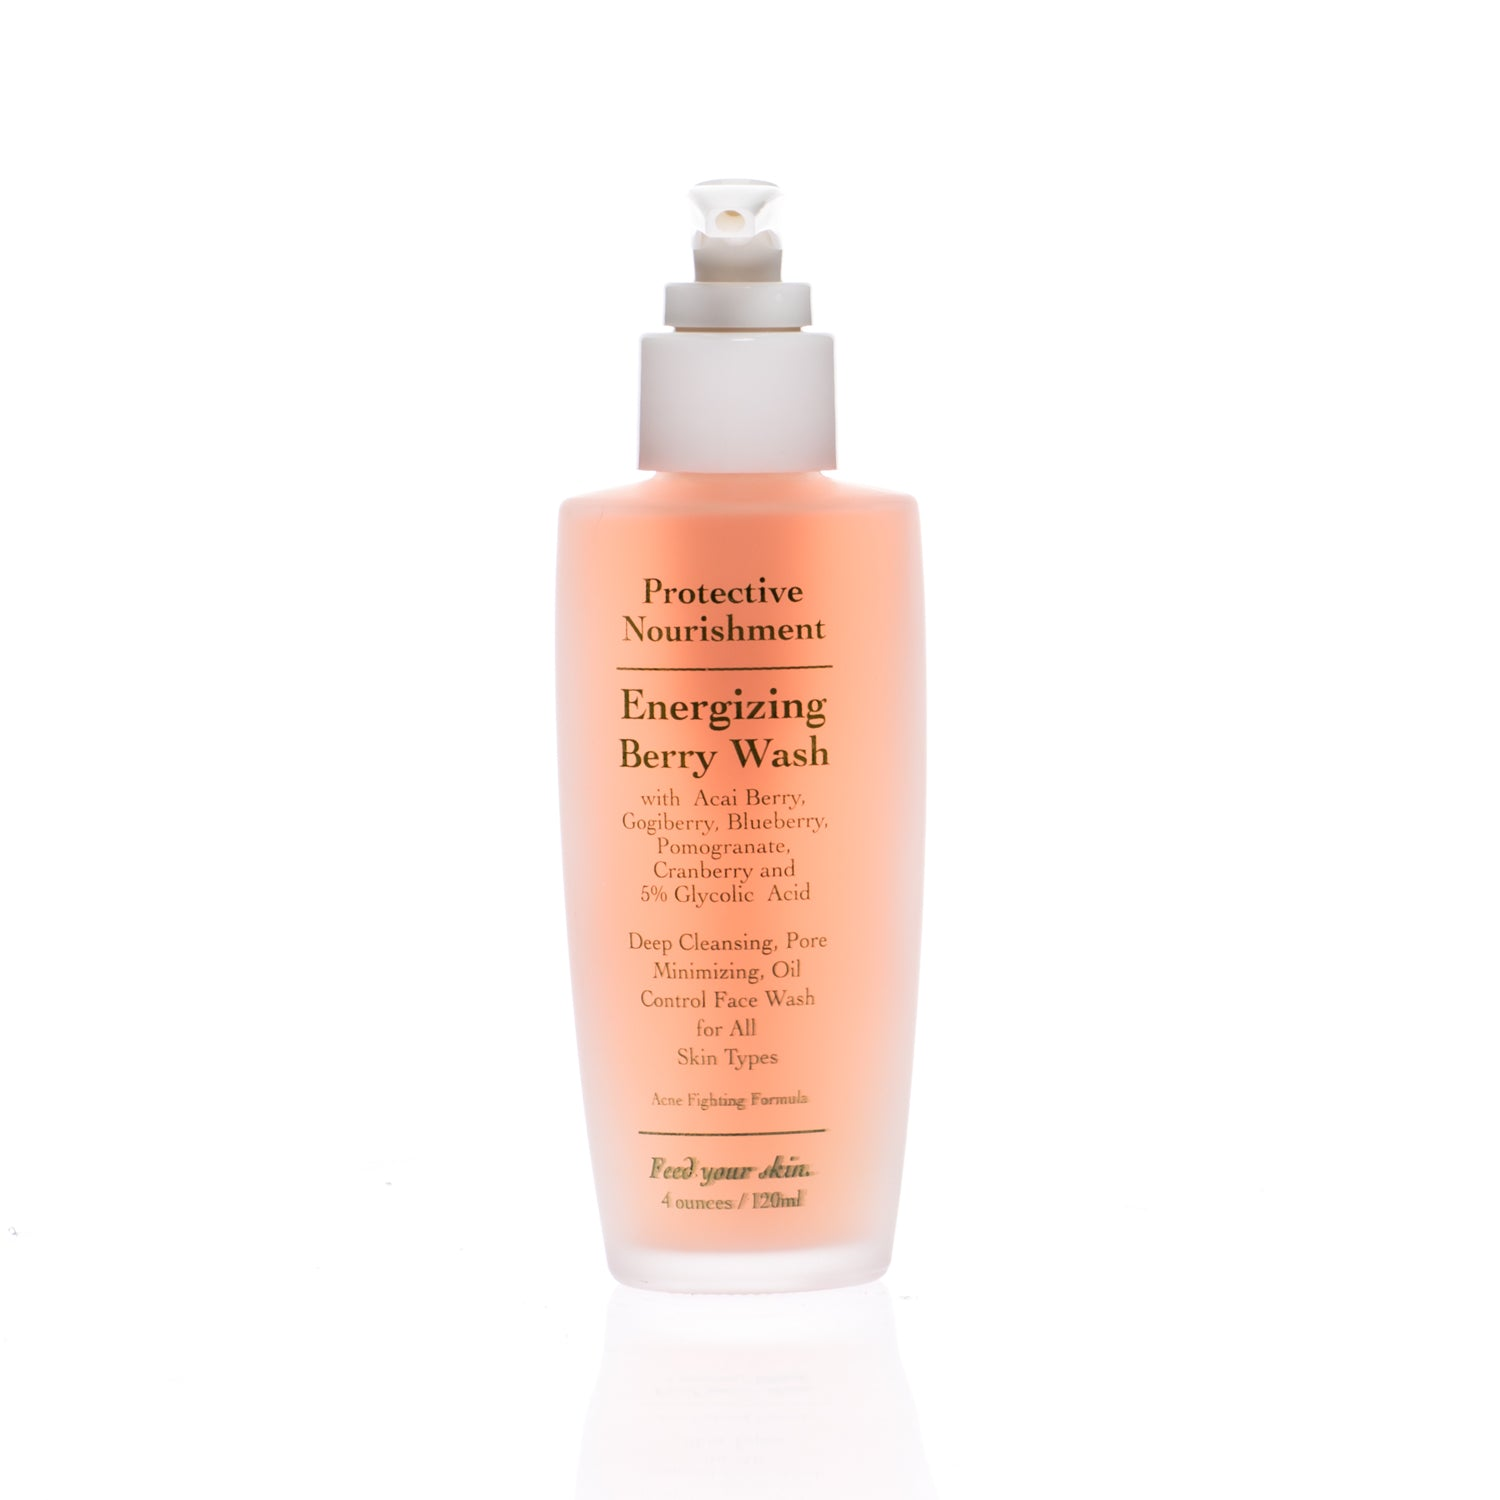 Energizing Berry Wash - Protective Nourishment